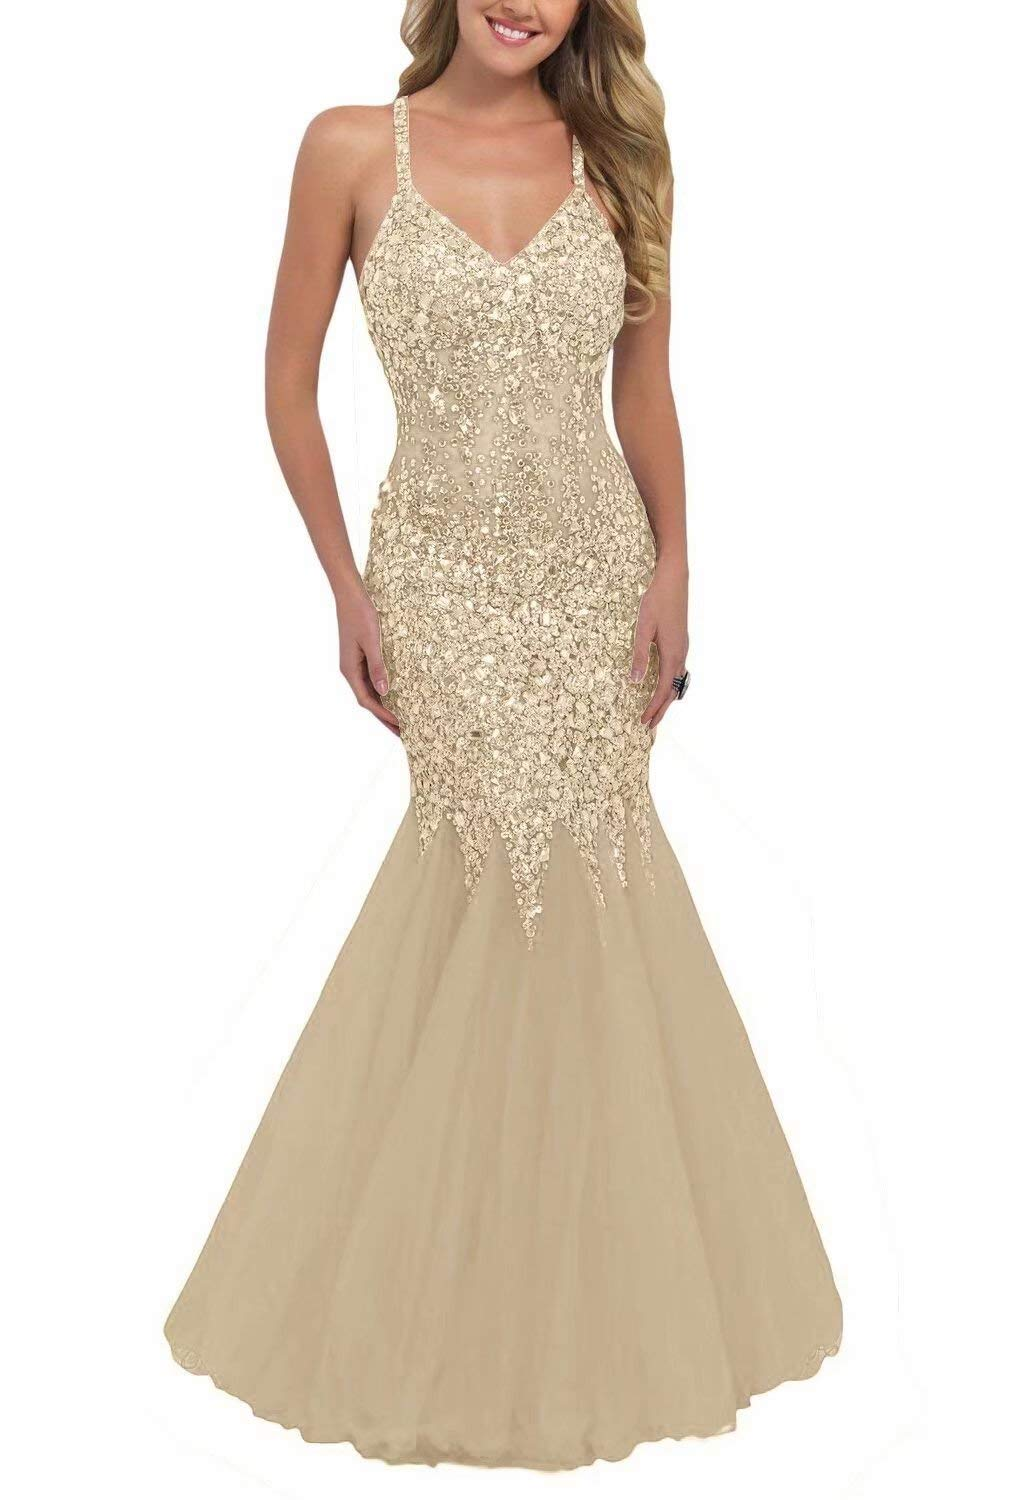 8fe50e27efe83 LovelyBridal Women's Sexy Backless See-Through Mermaid Prom Dresses Long  Evening Gowns .